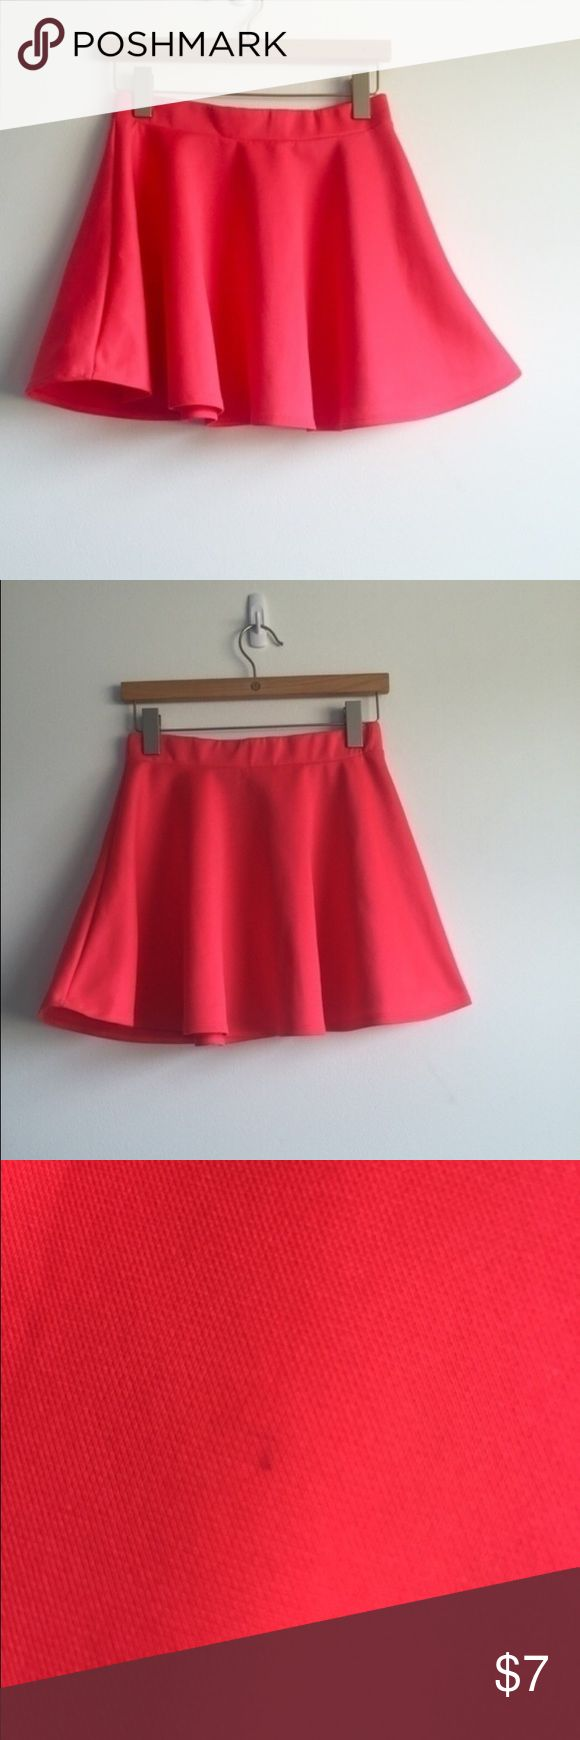 Coral Melon Colored Body Central Skater Skirt Coral-colored skater skirt from Body Central in a size medium (runs a bit smaller). It's really cute and in good condition, there is just a very small stain on one side and a tiny snag on the other Body Central Skirts Mini